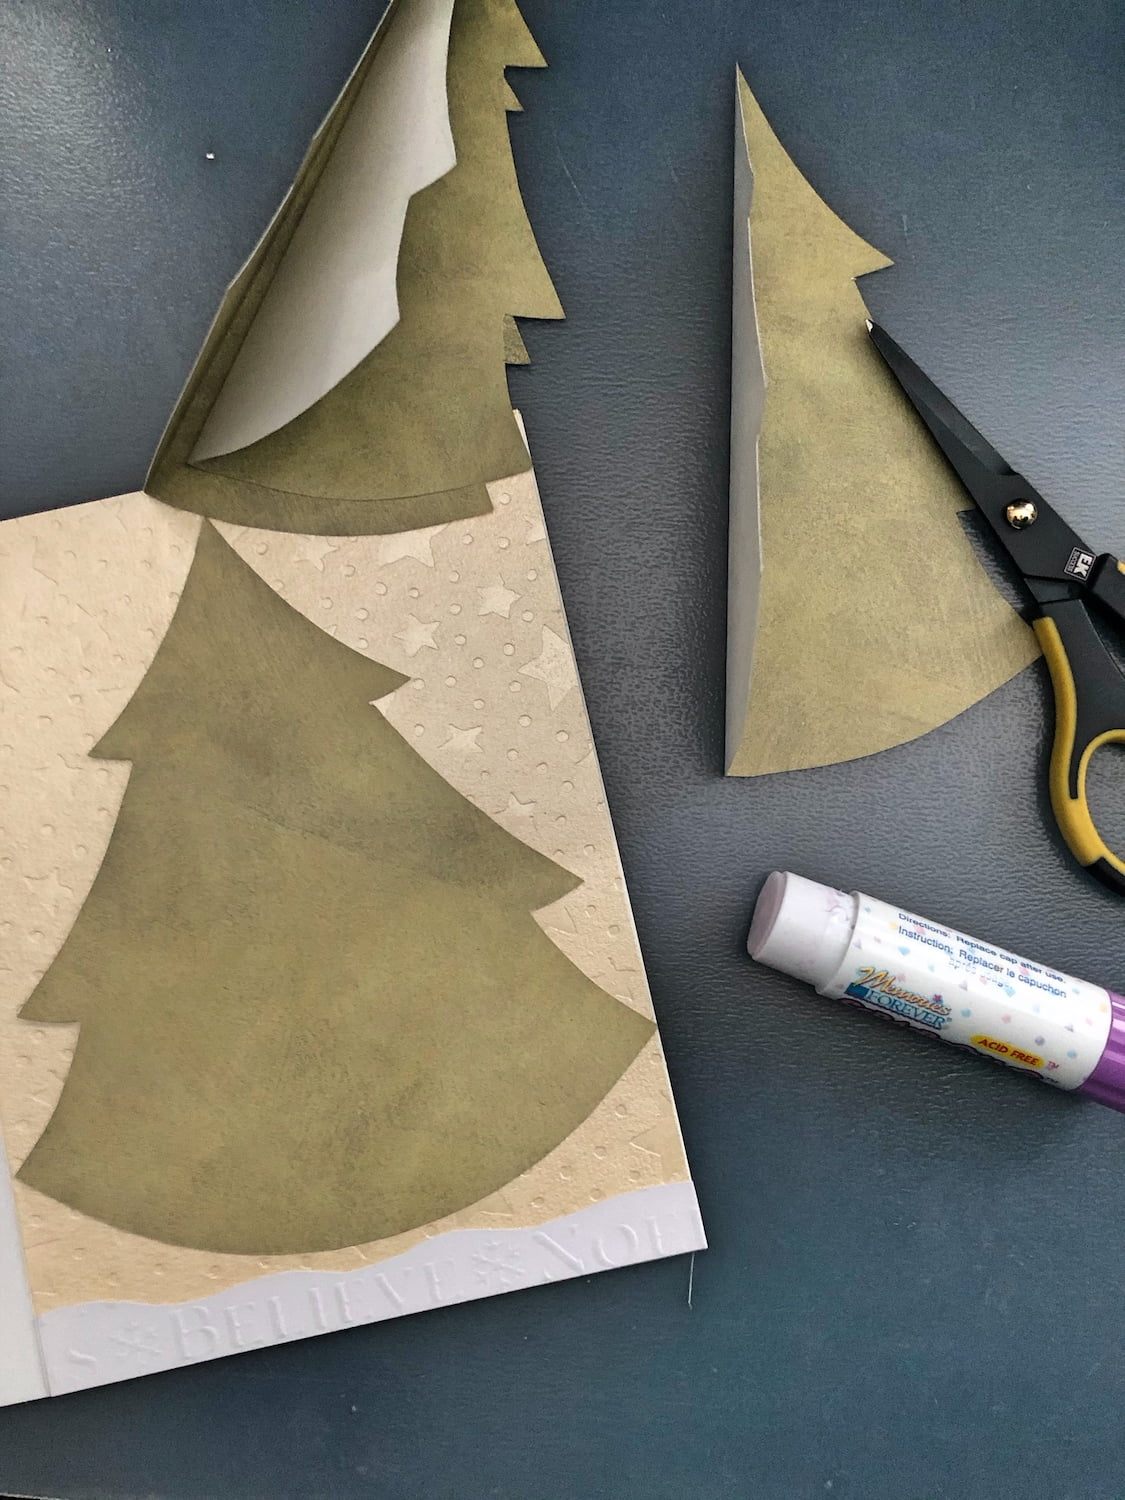 Handmade Christmas Card - Cut Out Trees